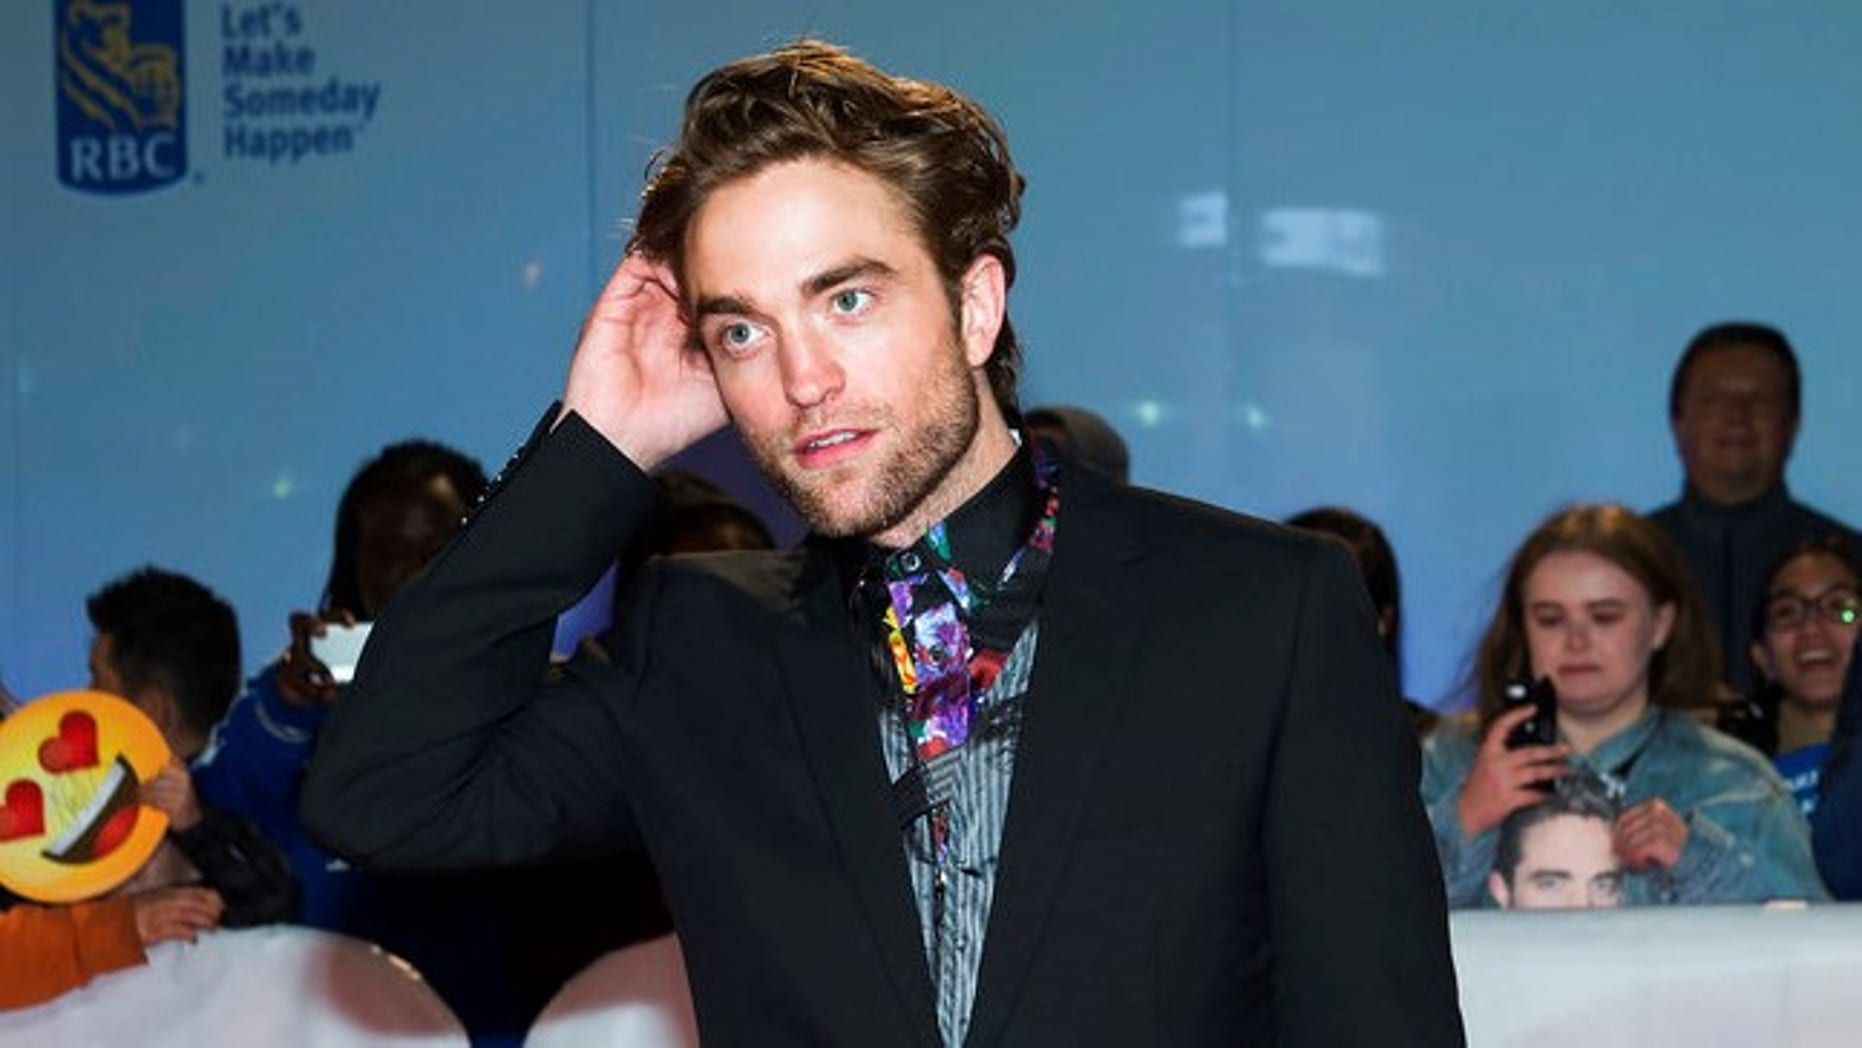 """Robert Pattinson said said he's ready to reprise his role as vampire Edward Cullen in the """"Twilight"""" franchise."""